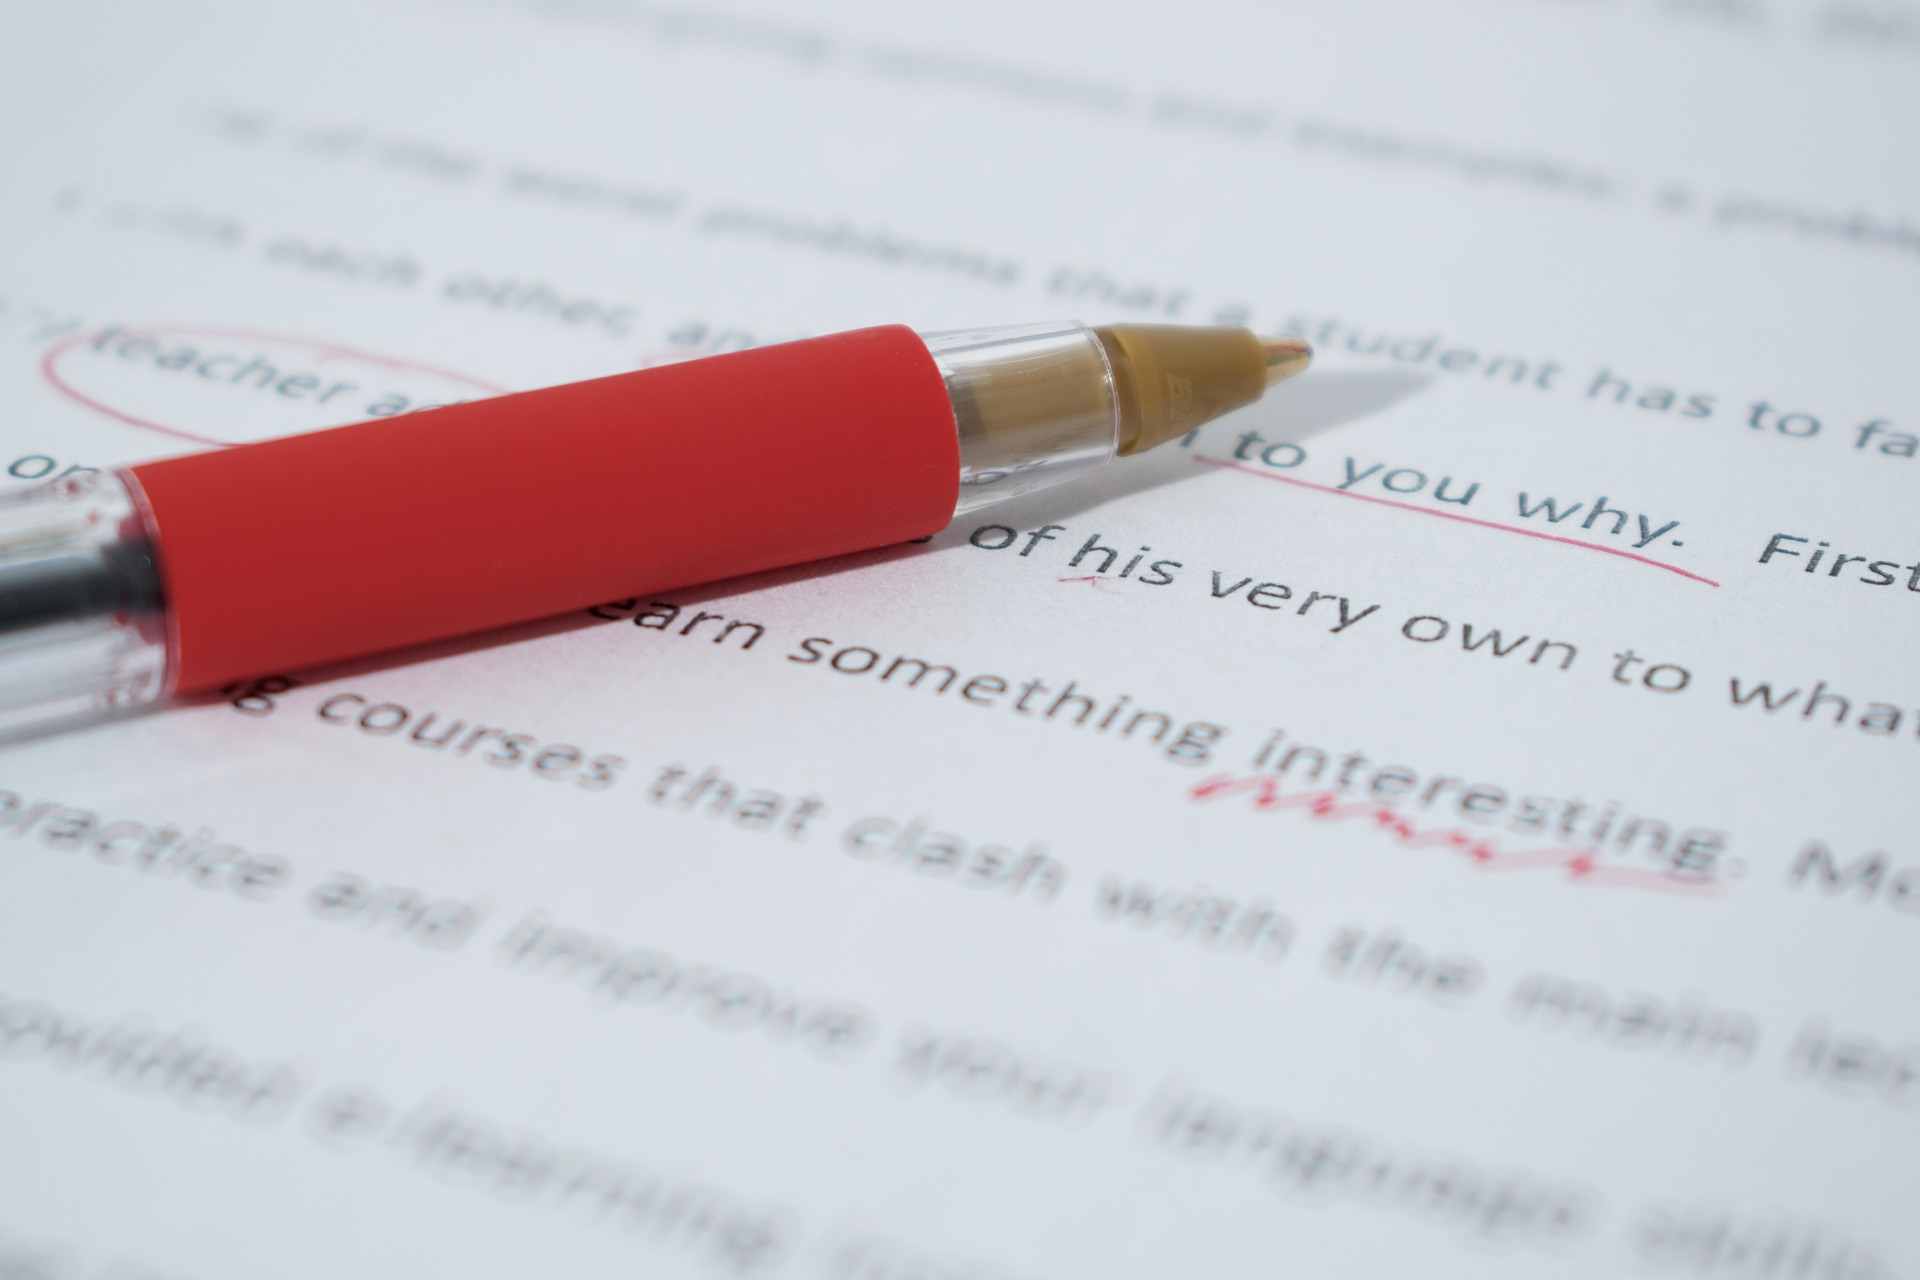 Watermark Events offers content proofreading services